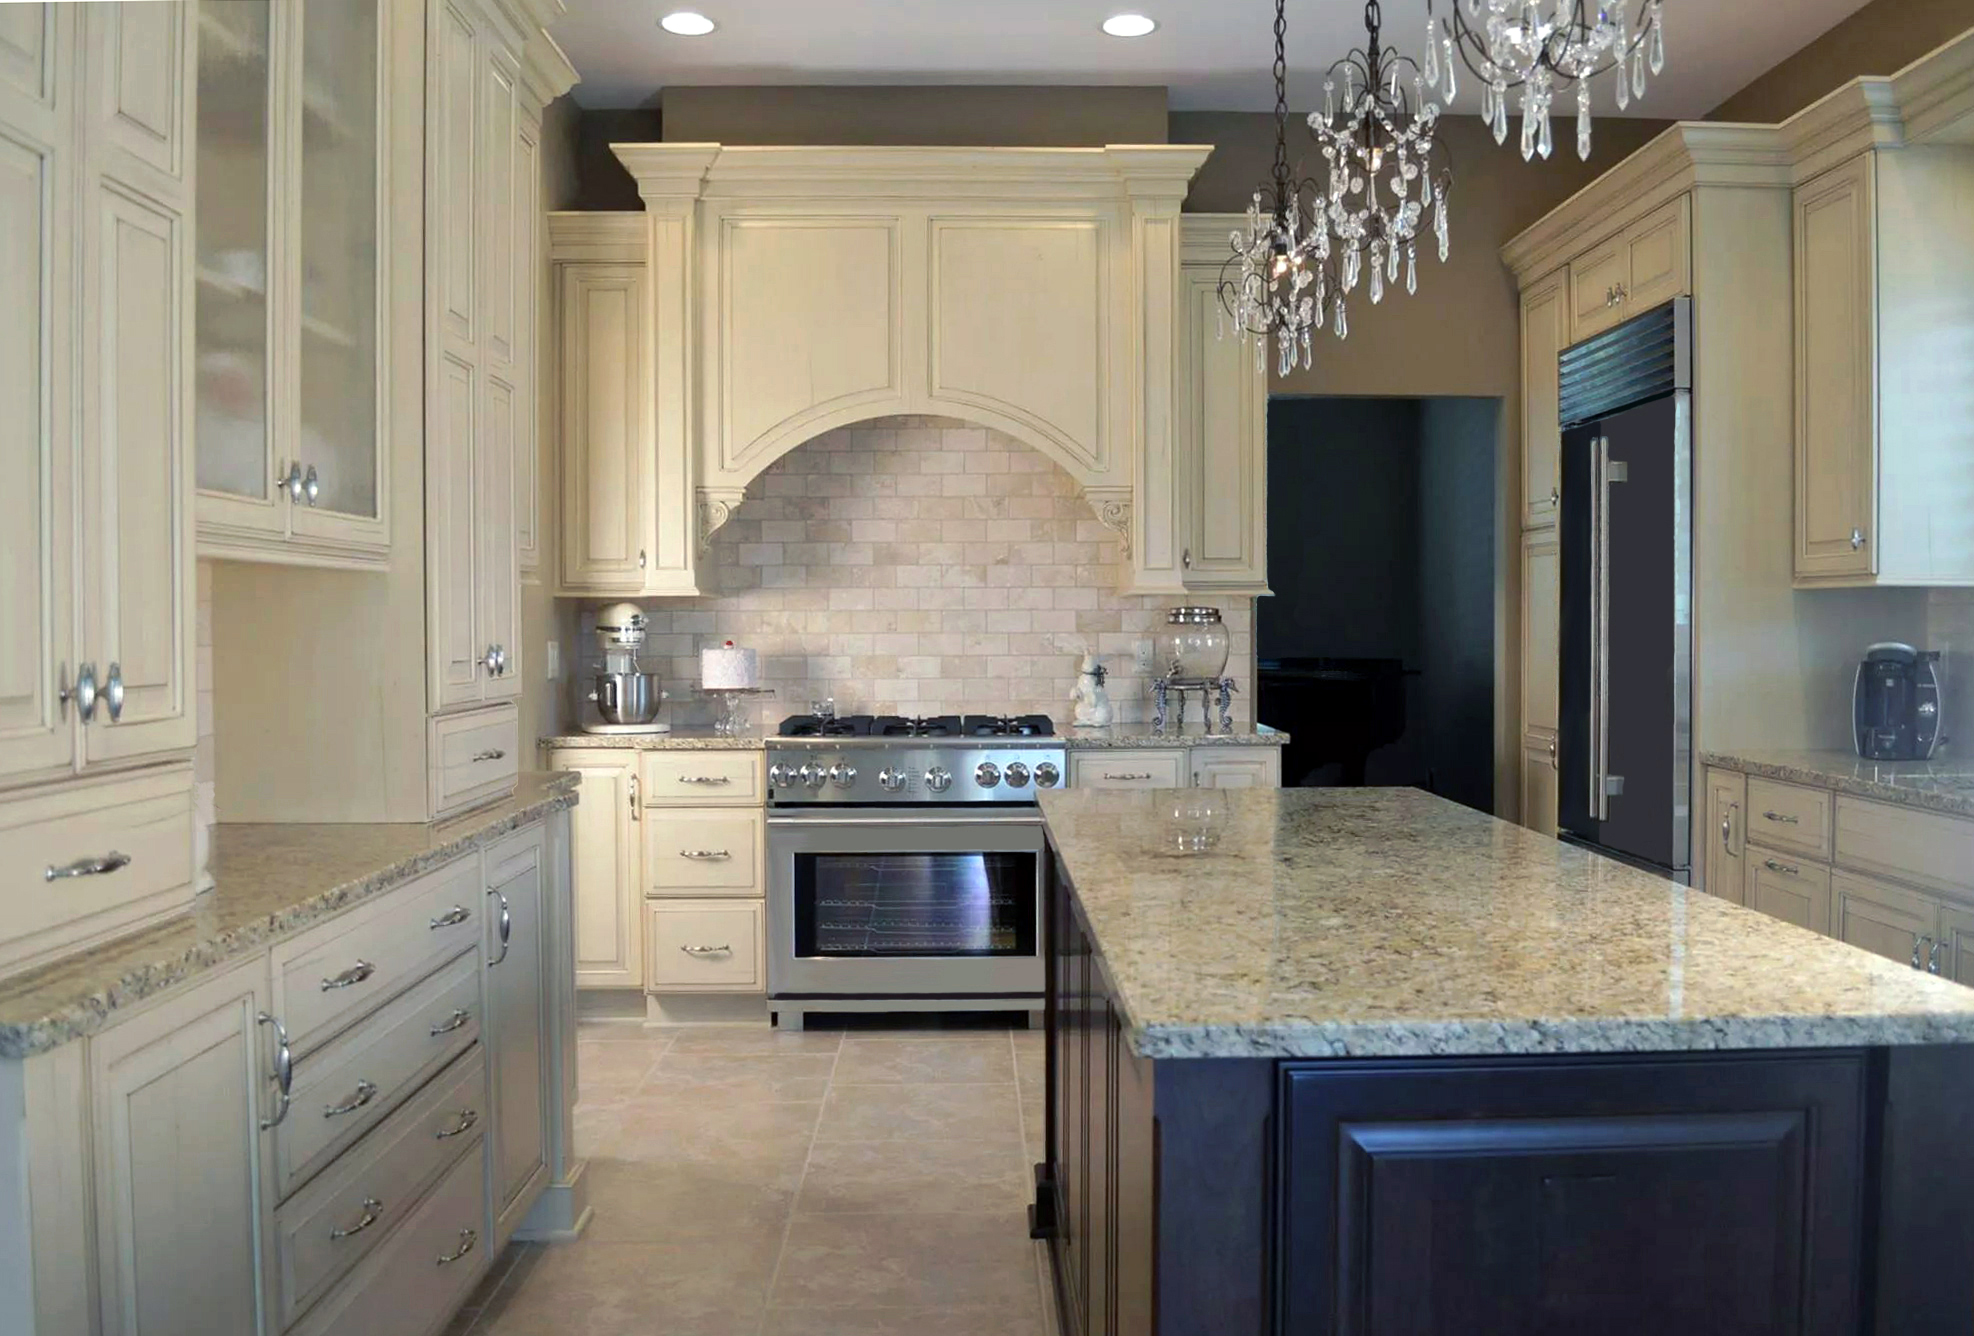 Traditional Kitchen Styles Interesting Traditional Kitchen Design 2014 White Cabinets